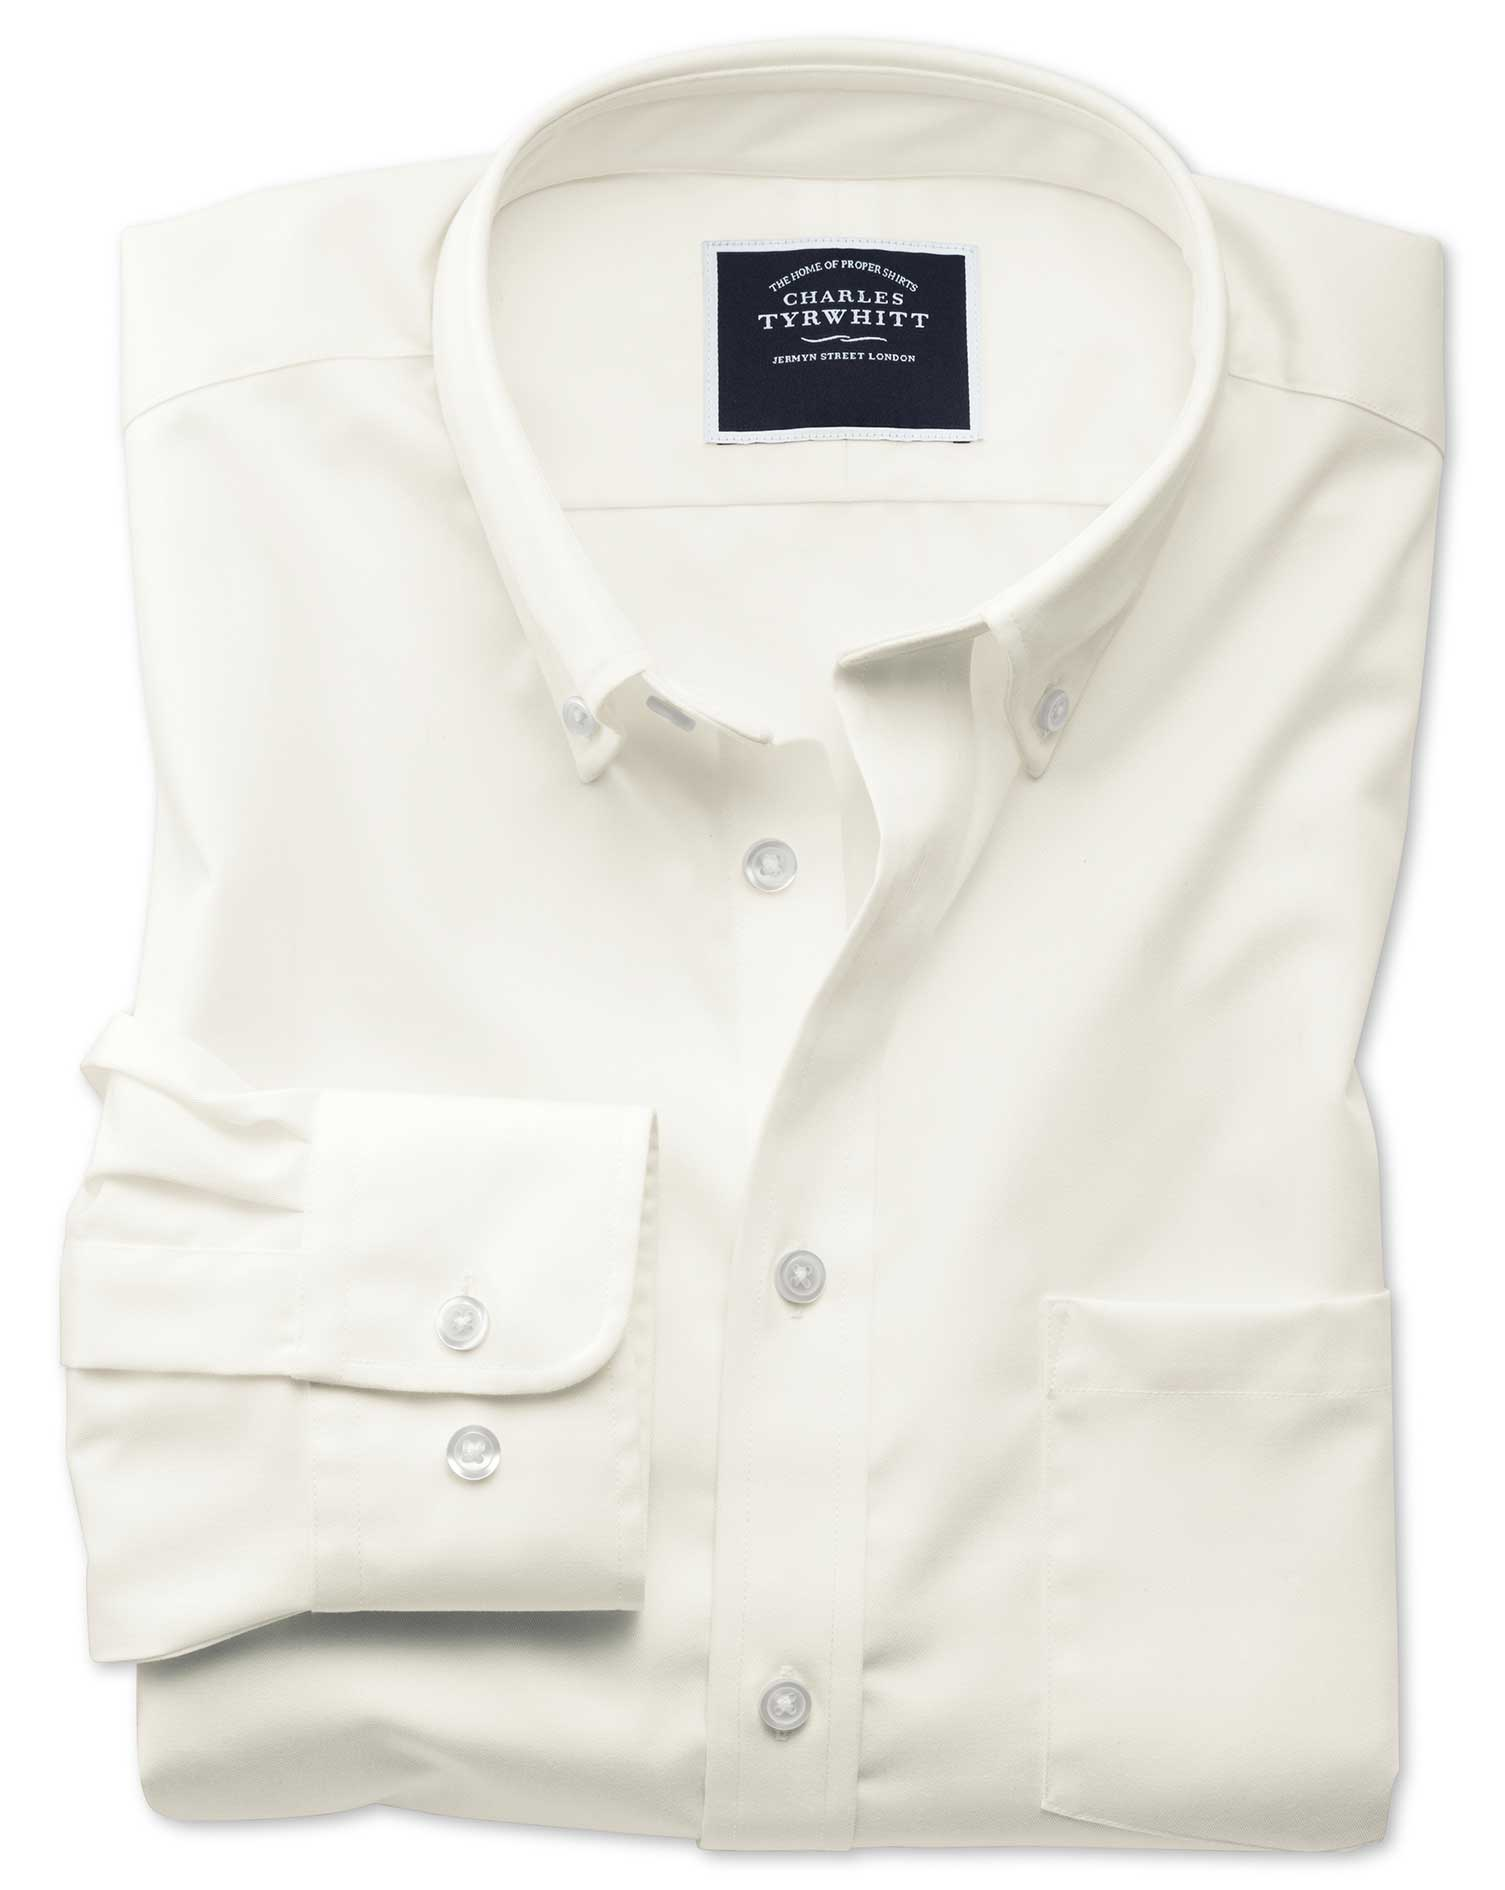 Slim Fit Button-Down Non-Iron Twill Off-White Cotton Shirt Single Cuff Size XS by Charles Tyrwhitt